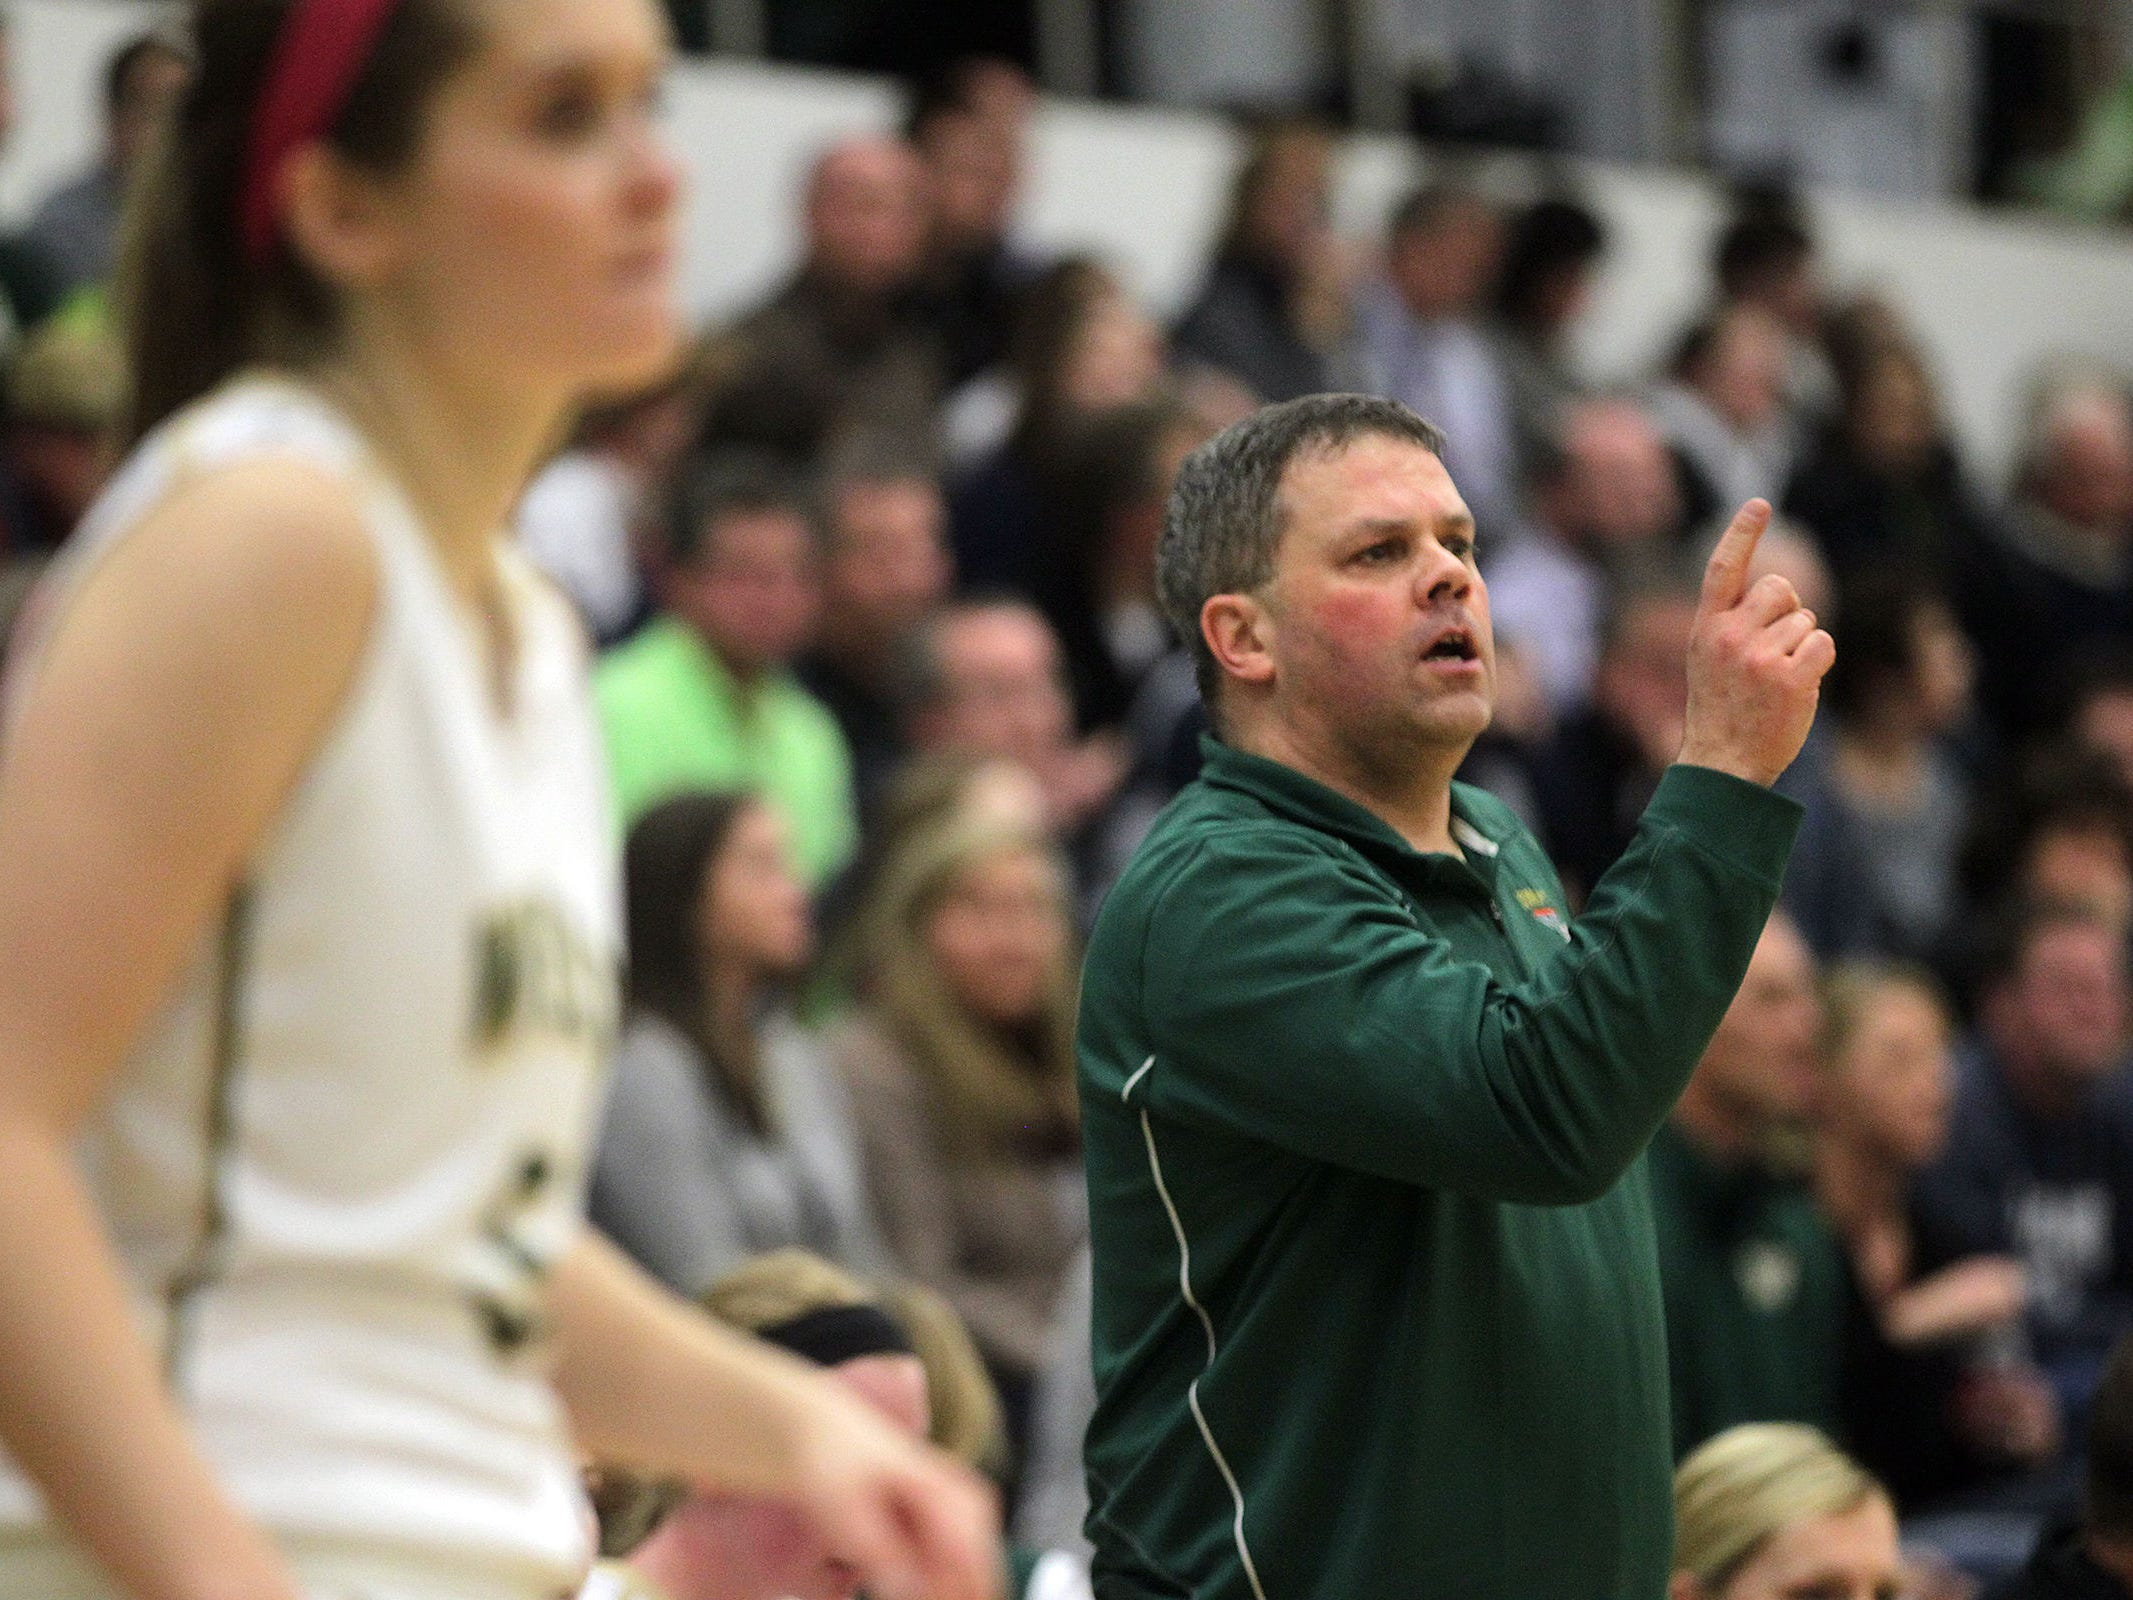 West High head coach BJ Mayer calls to players during the Women of Troy's Class 5A regional final against Pleasant Valley on Tuesday, Feb. 24, 2015. West High won, 45-27, to advance to the state tournament. David Scrivner / Iowa City Press-Citizen